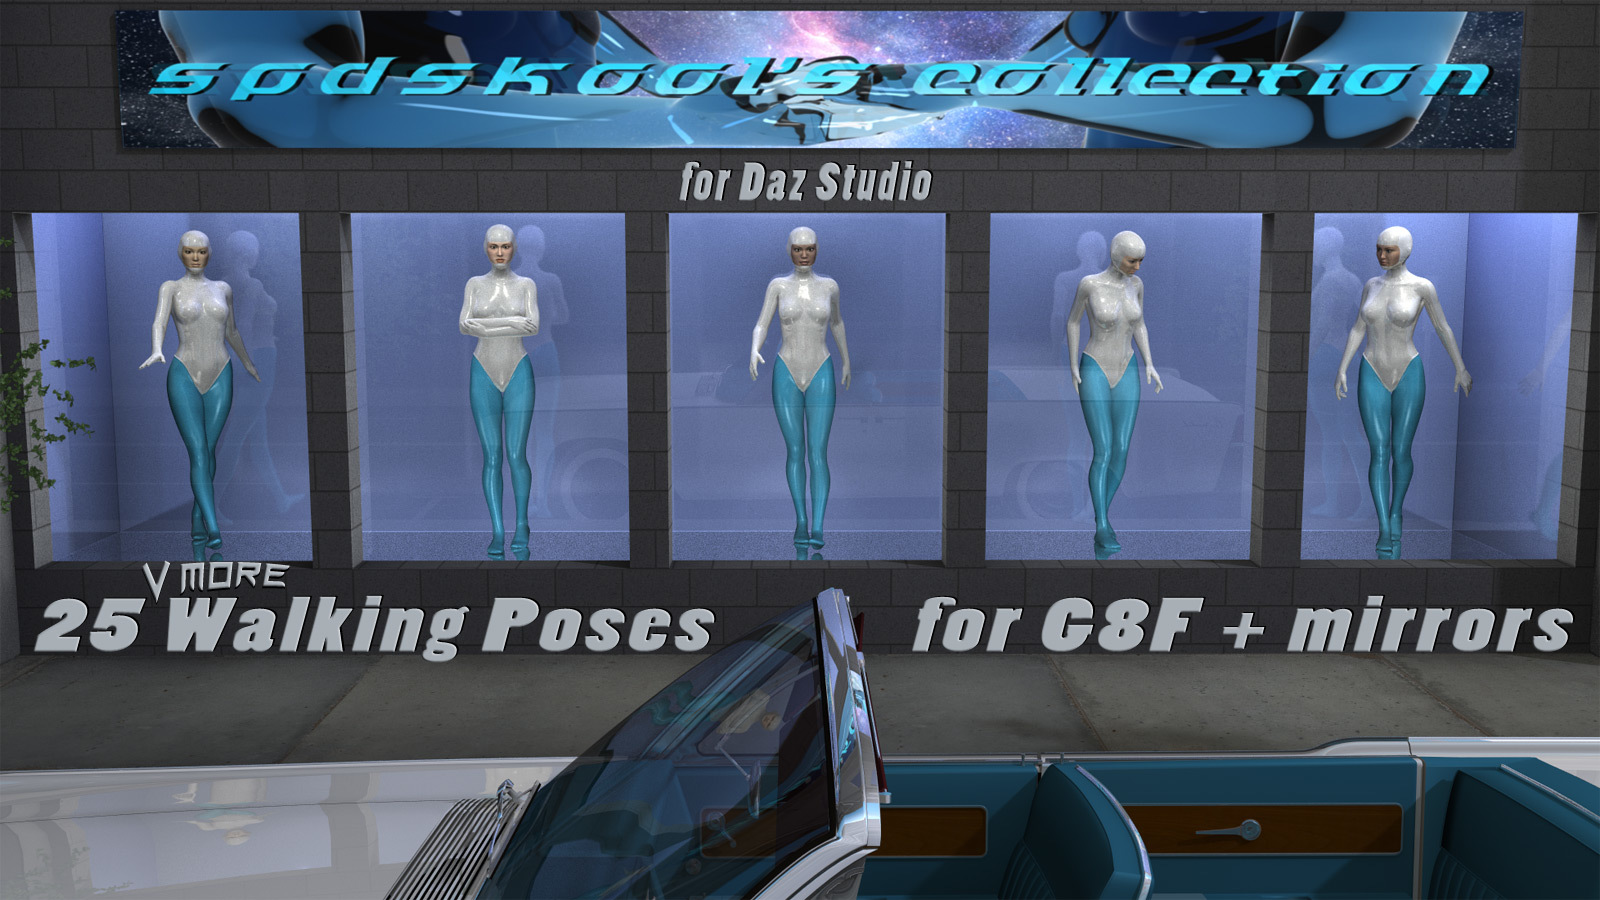 25 more Walking Poses for G8F